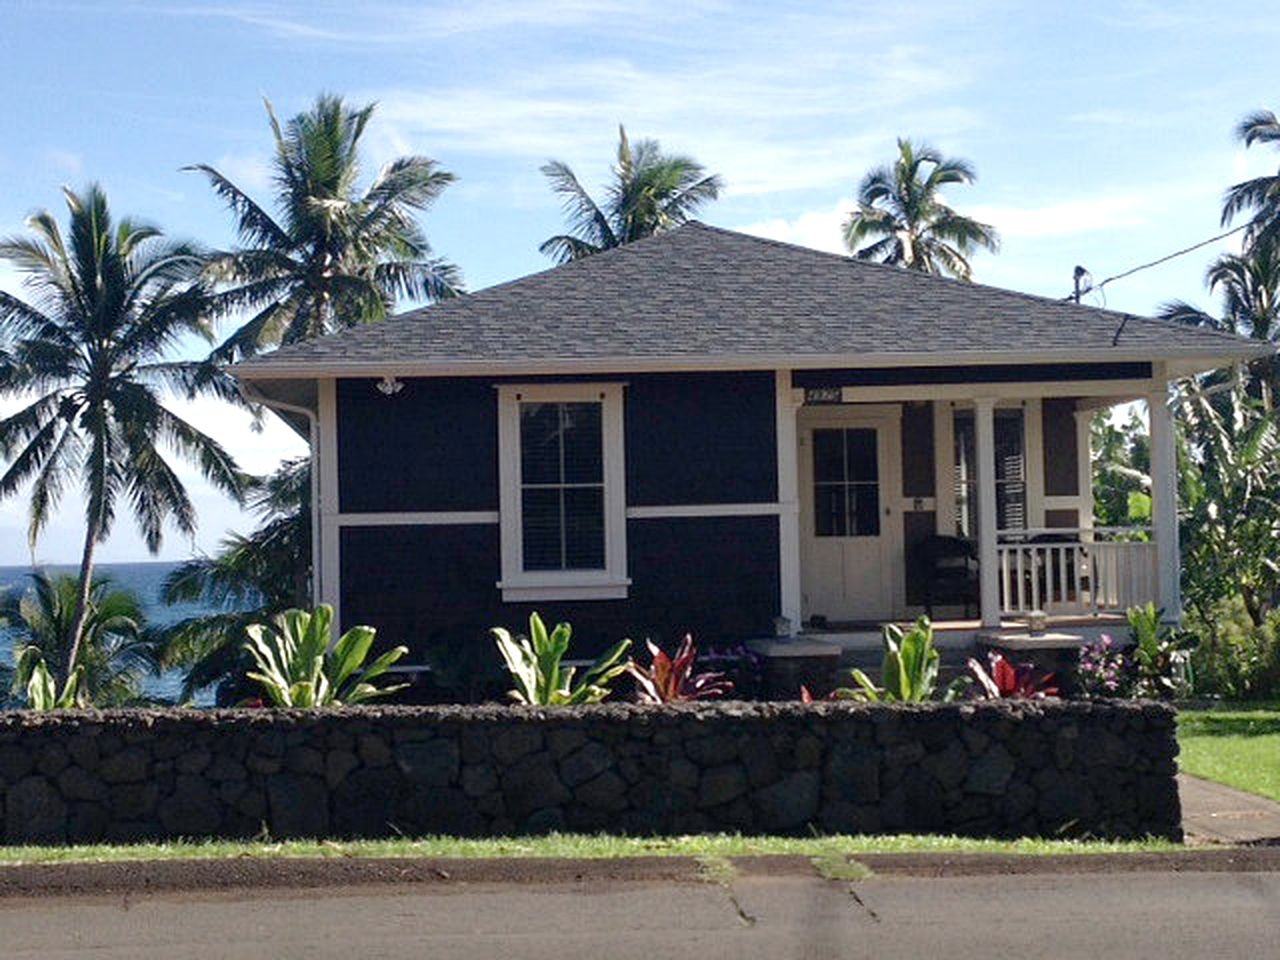 Cottages (Hana, Hawaii, United States)